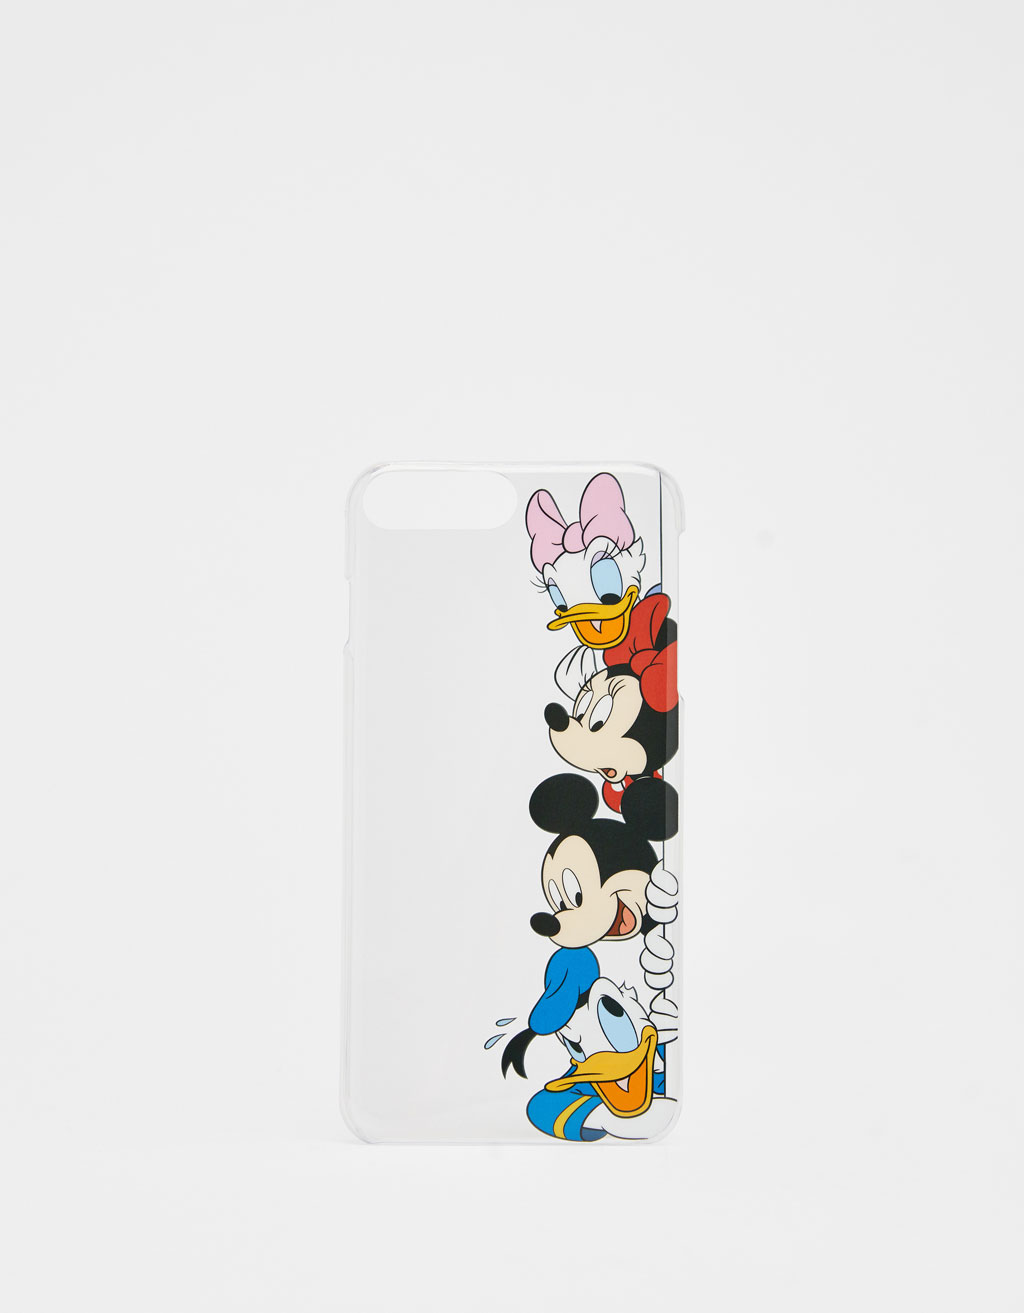 Carcasa Disney iPhone 6 plus / 7 plus / 8 plus